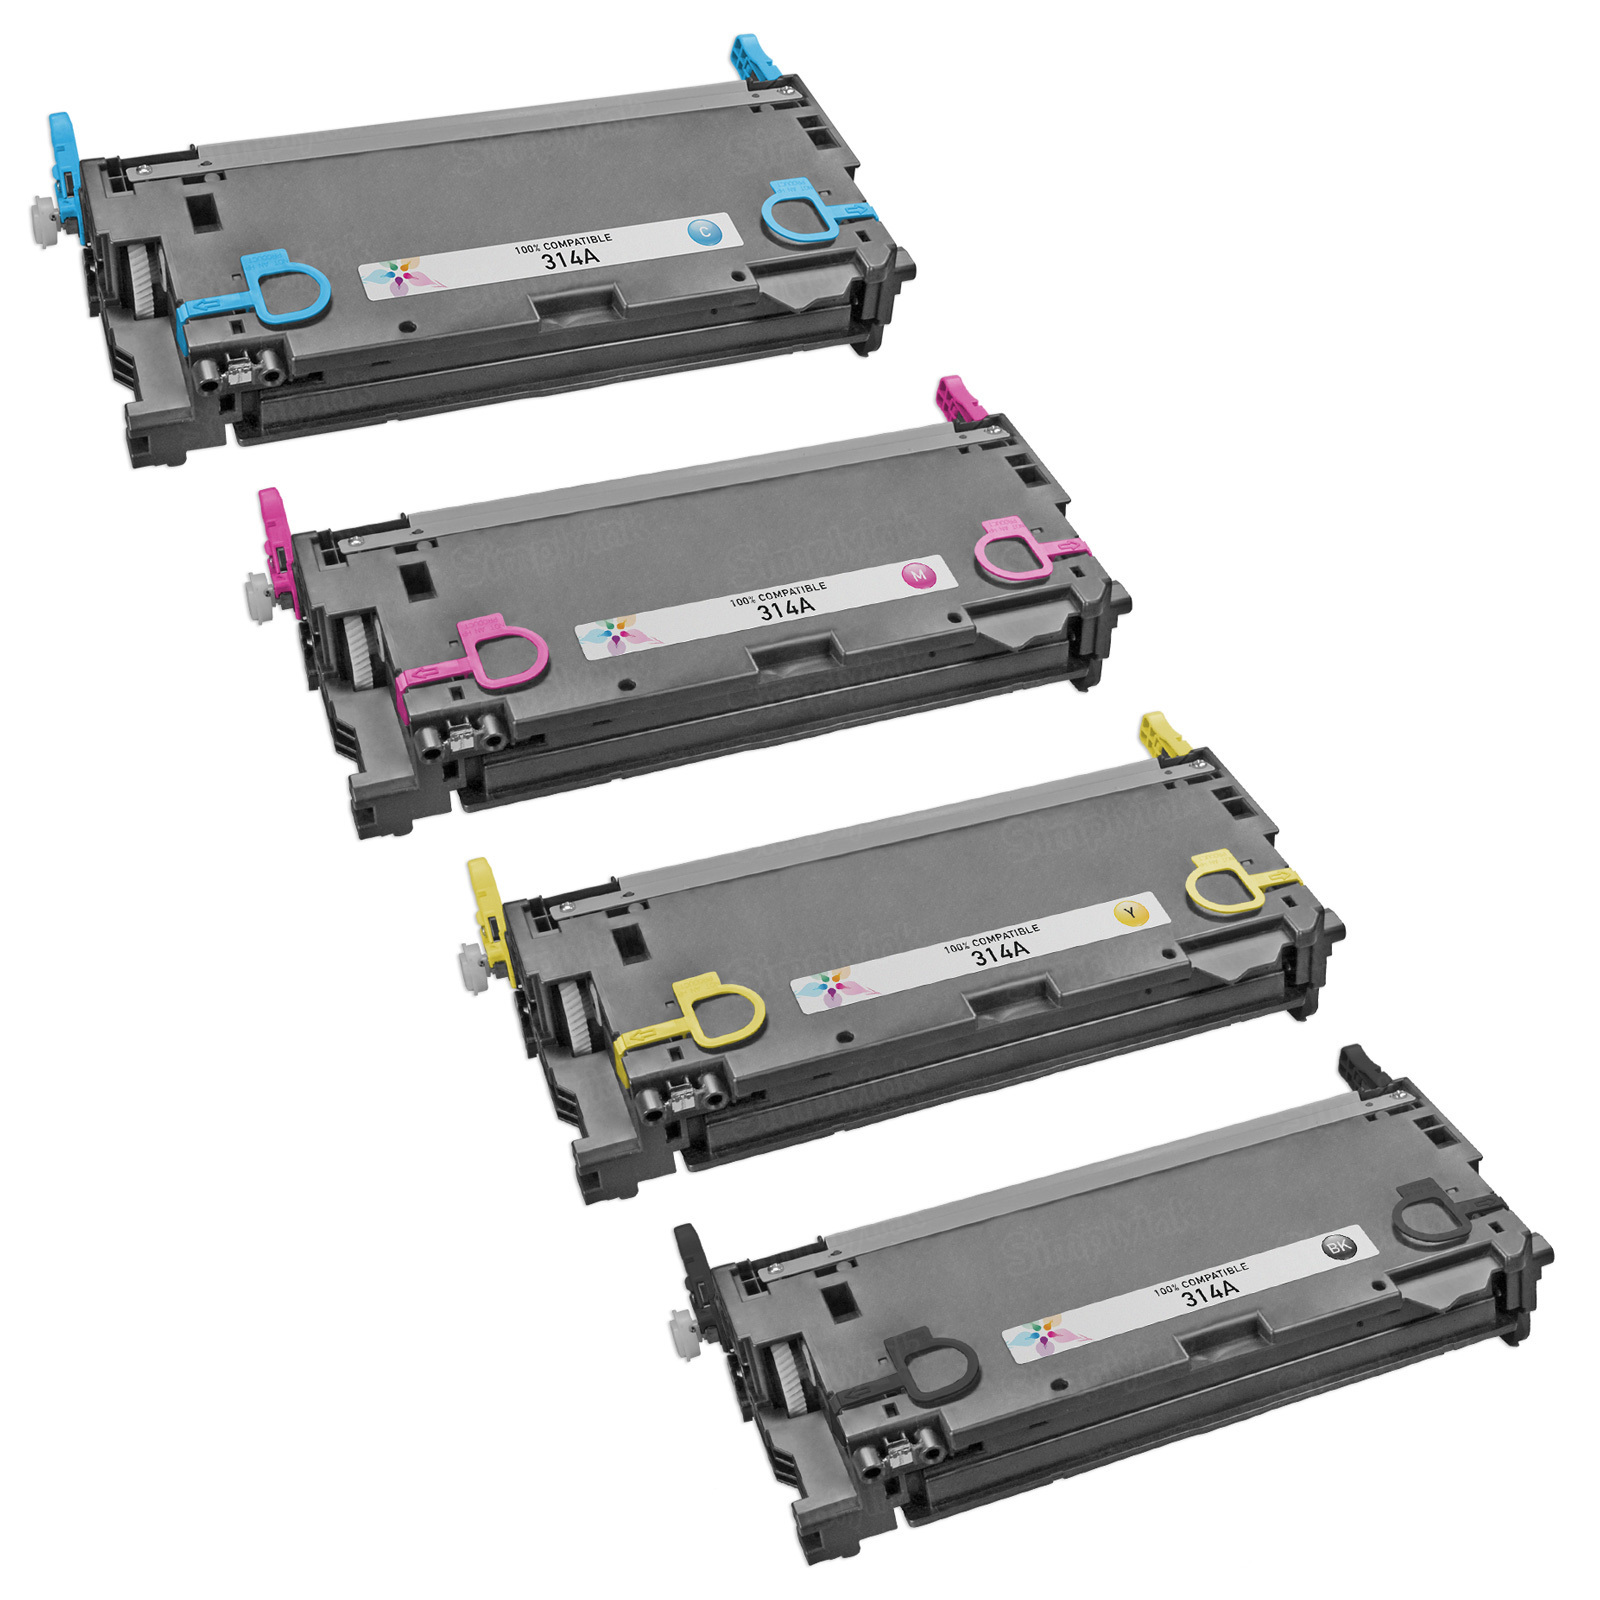 Remanufactured Replacement for HP 314A (Bk, C, M, Y) Set of 4 Toners